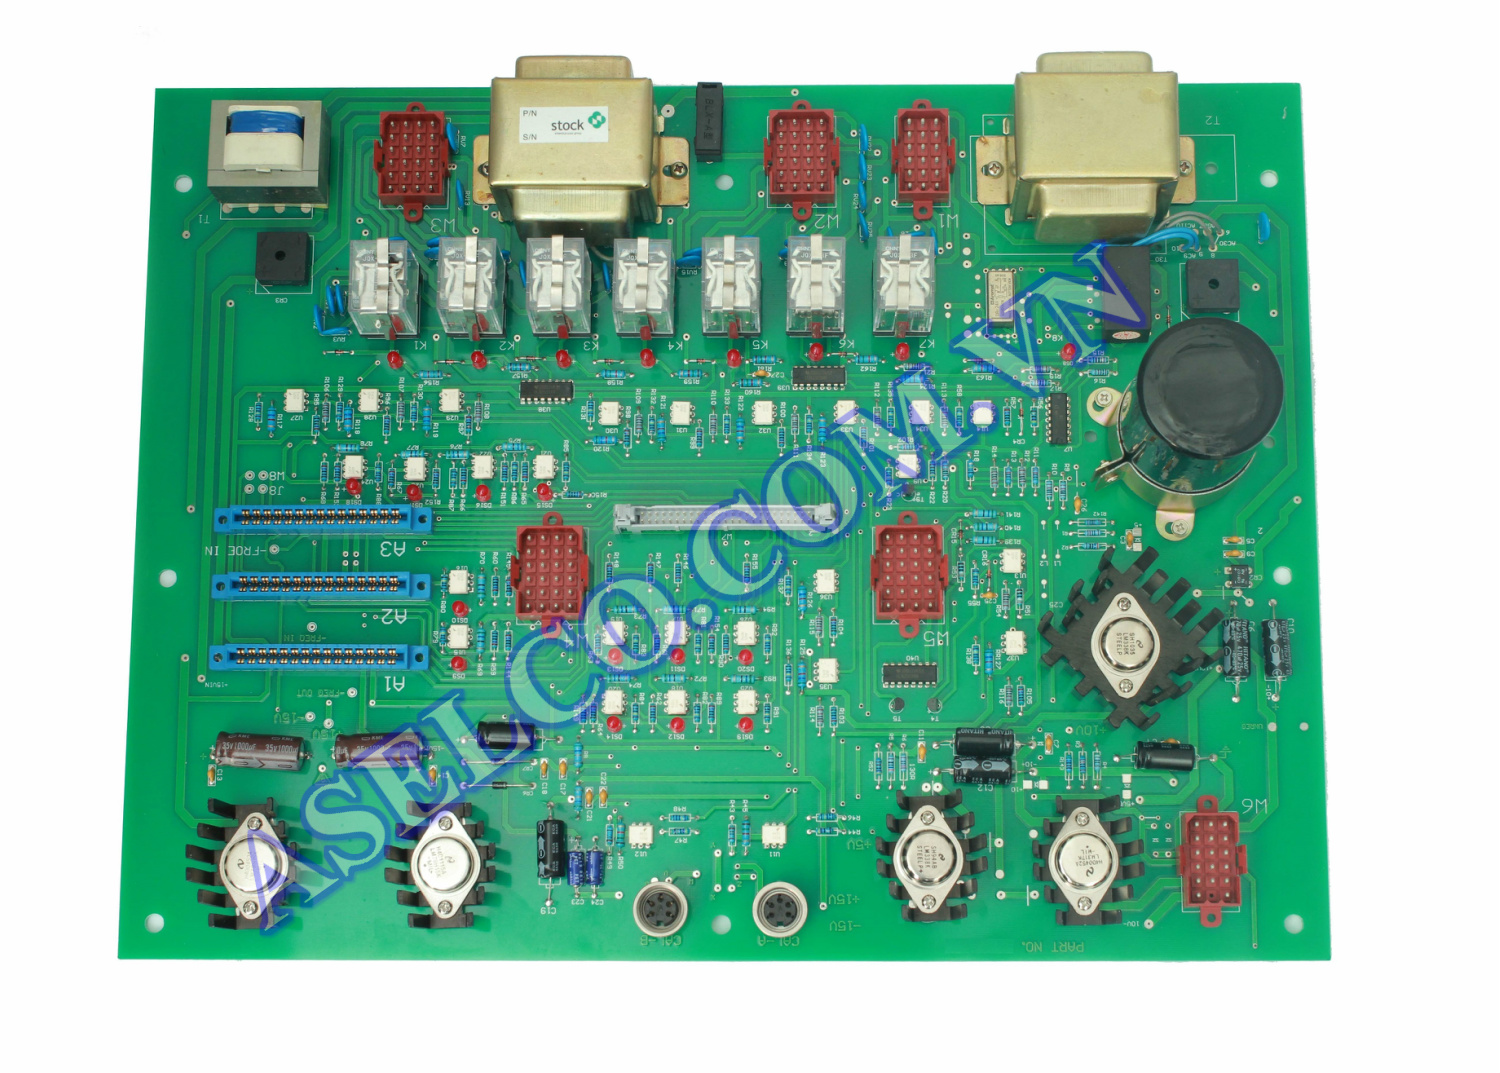 Bo cung cấp nguồn cho Mainboard hệ thống nạp than (Supply power Mainboard for Coal Feeder System)